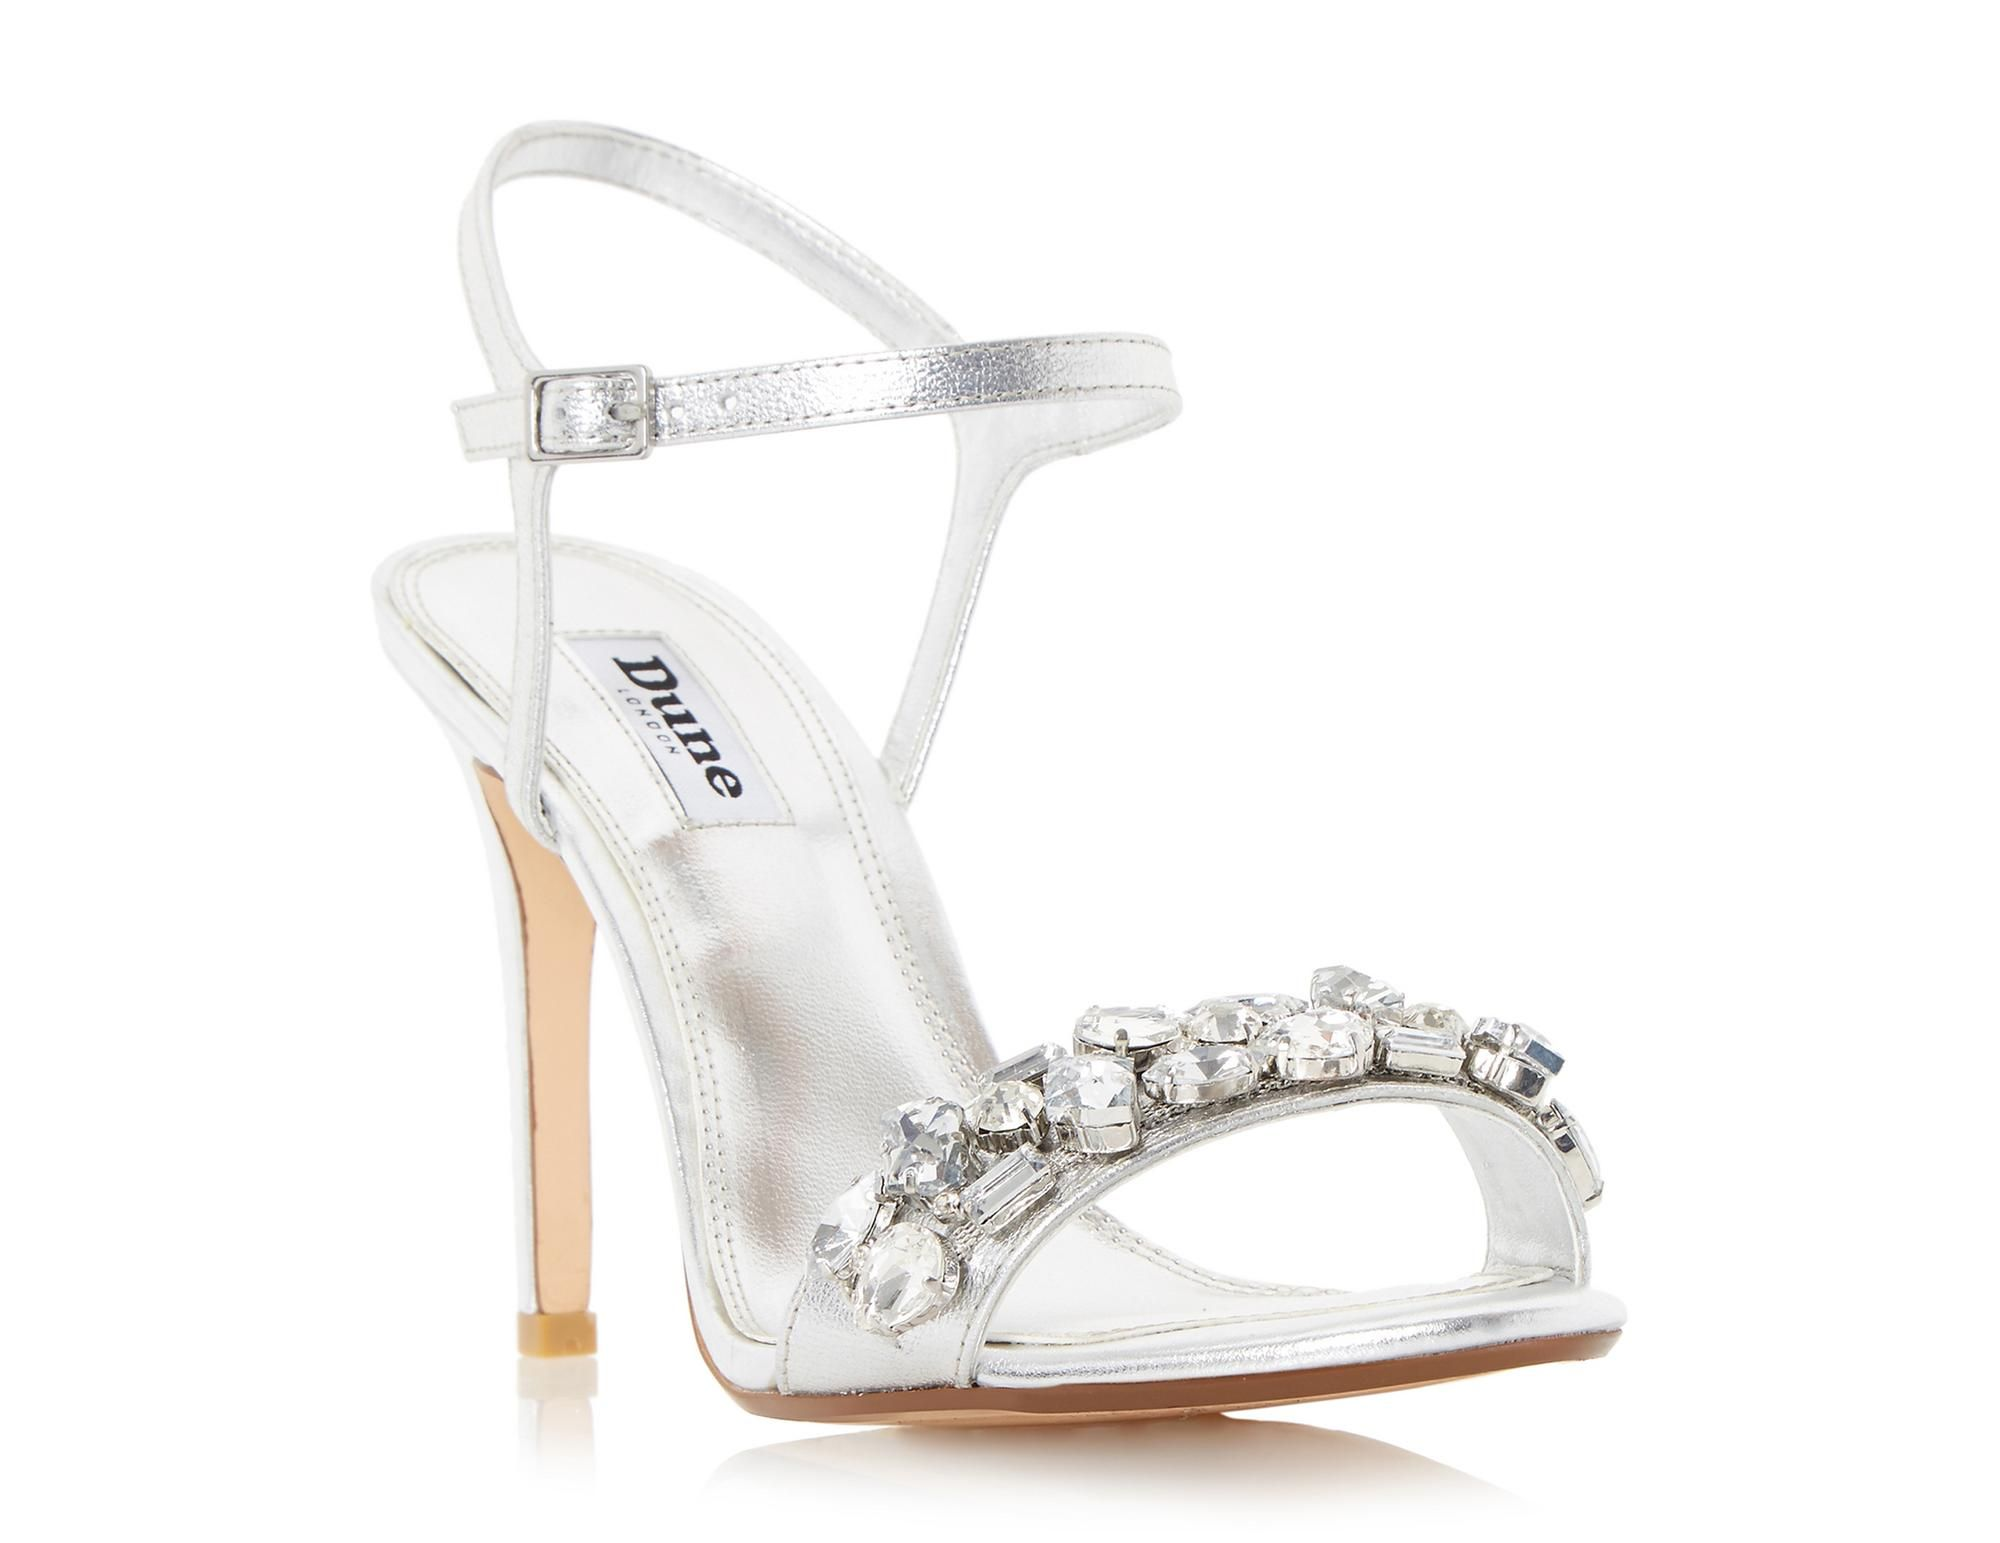 dc076ada9c DUNE LADIES MYA - Jewel Embellished High Heel Sandal - silver | Dune Shoes  Online